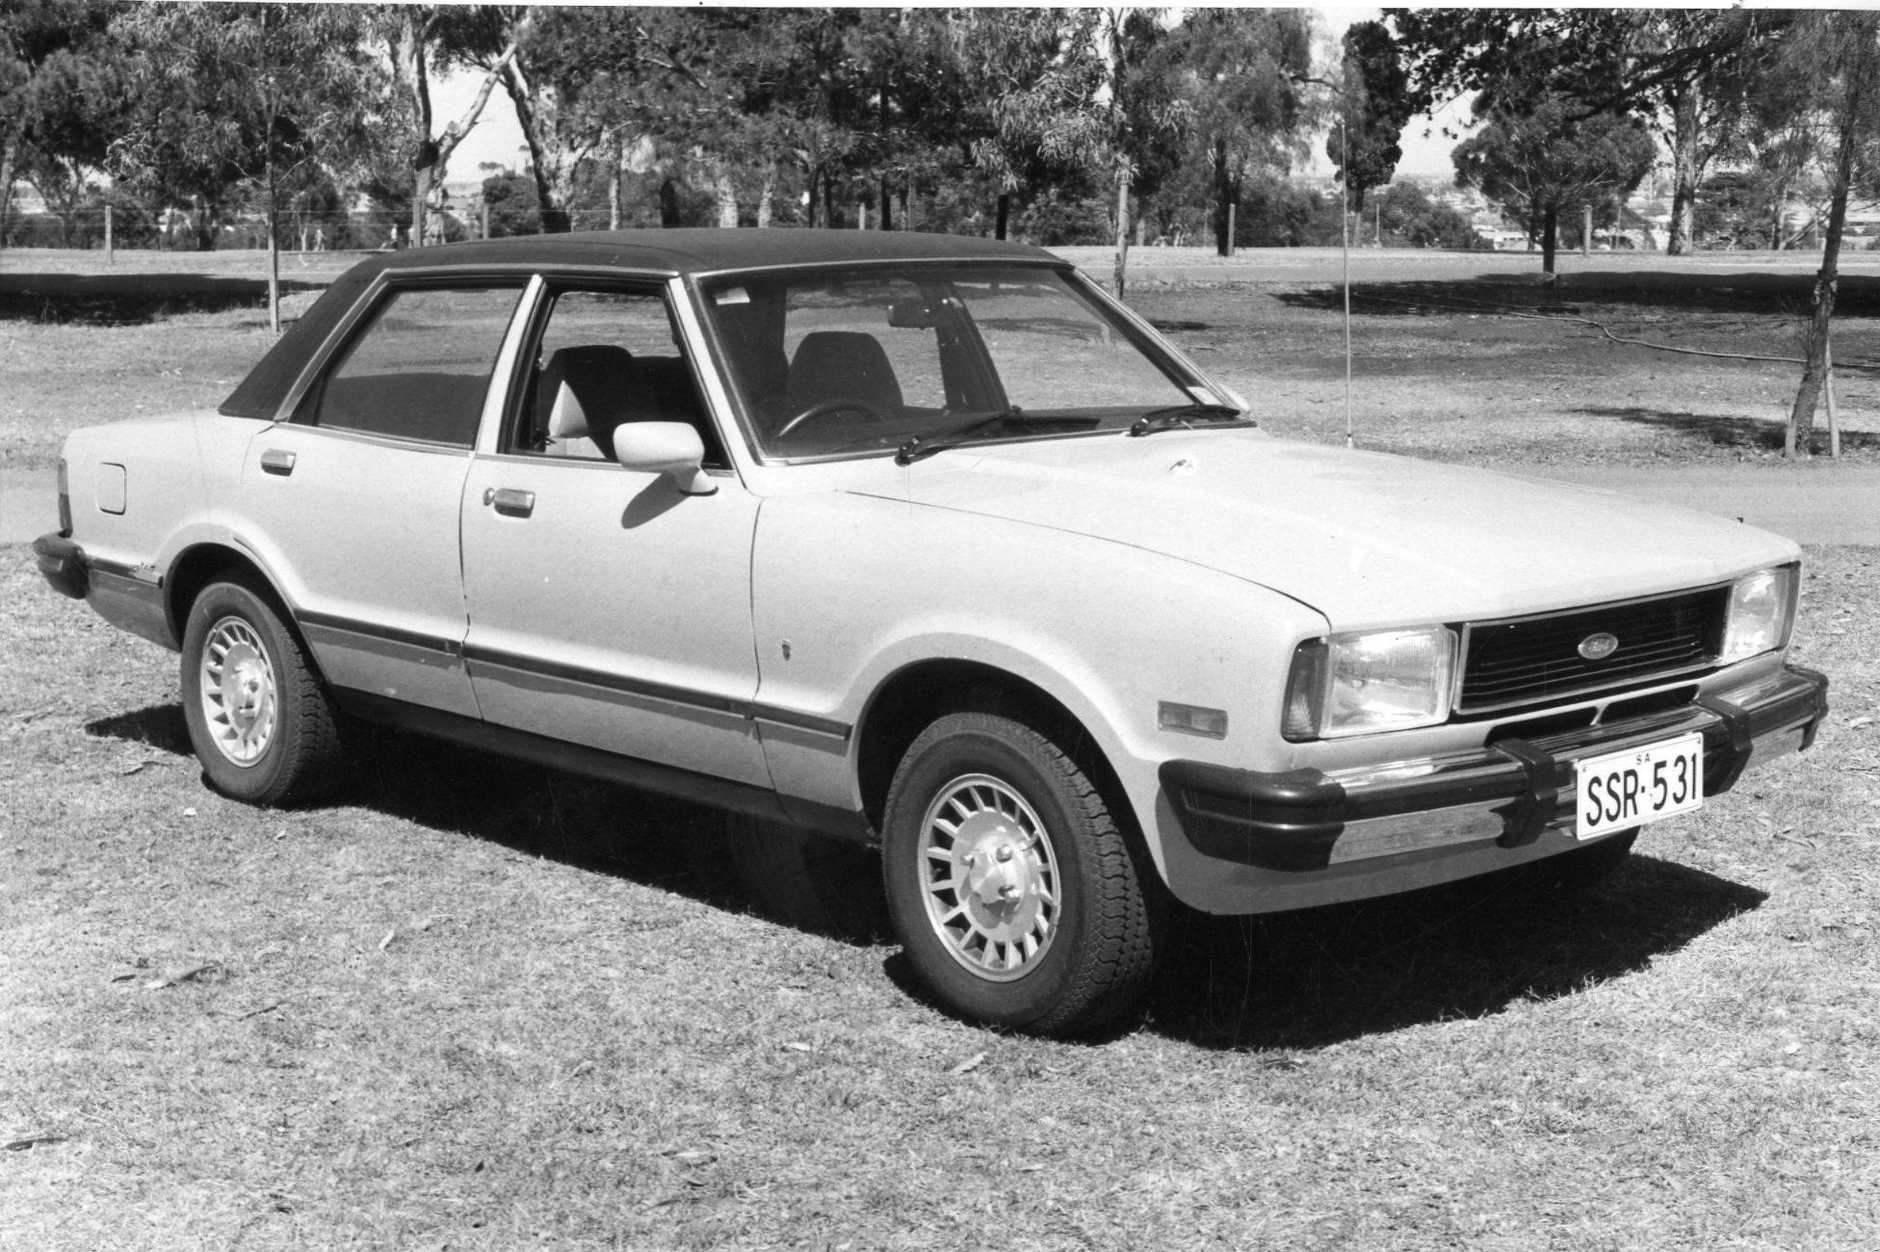 The Ford Cortina Ghia from 1978.